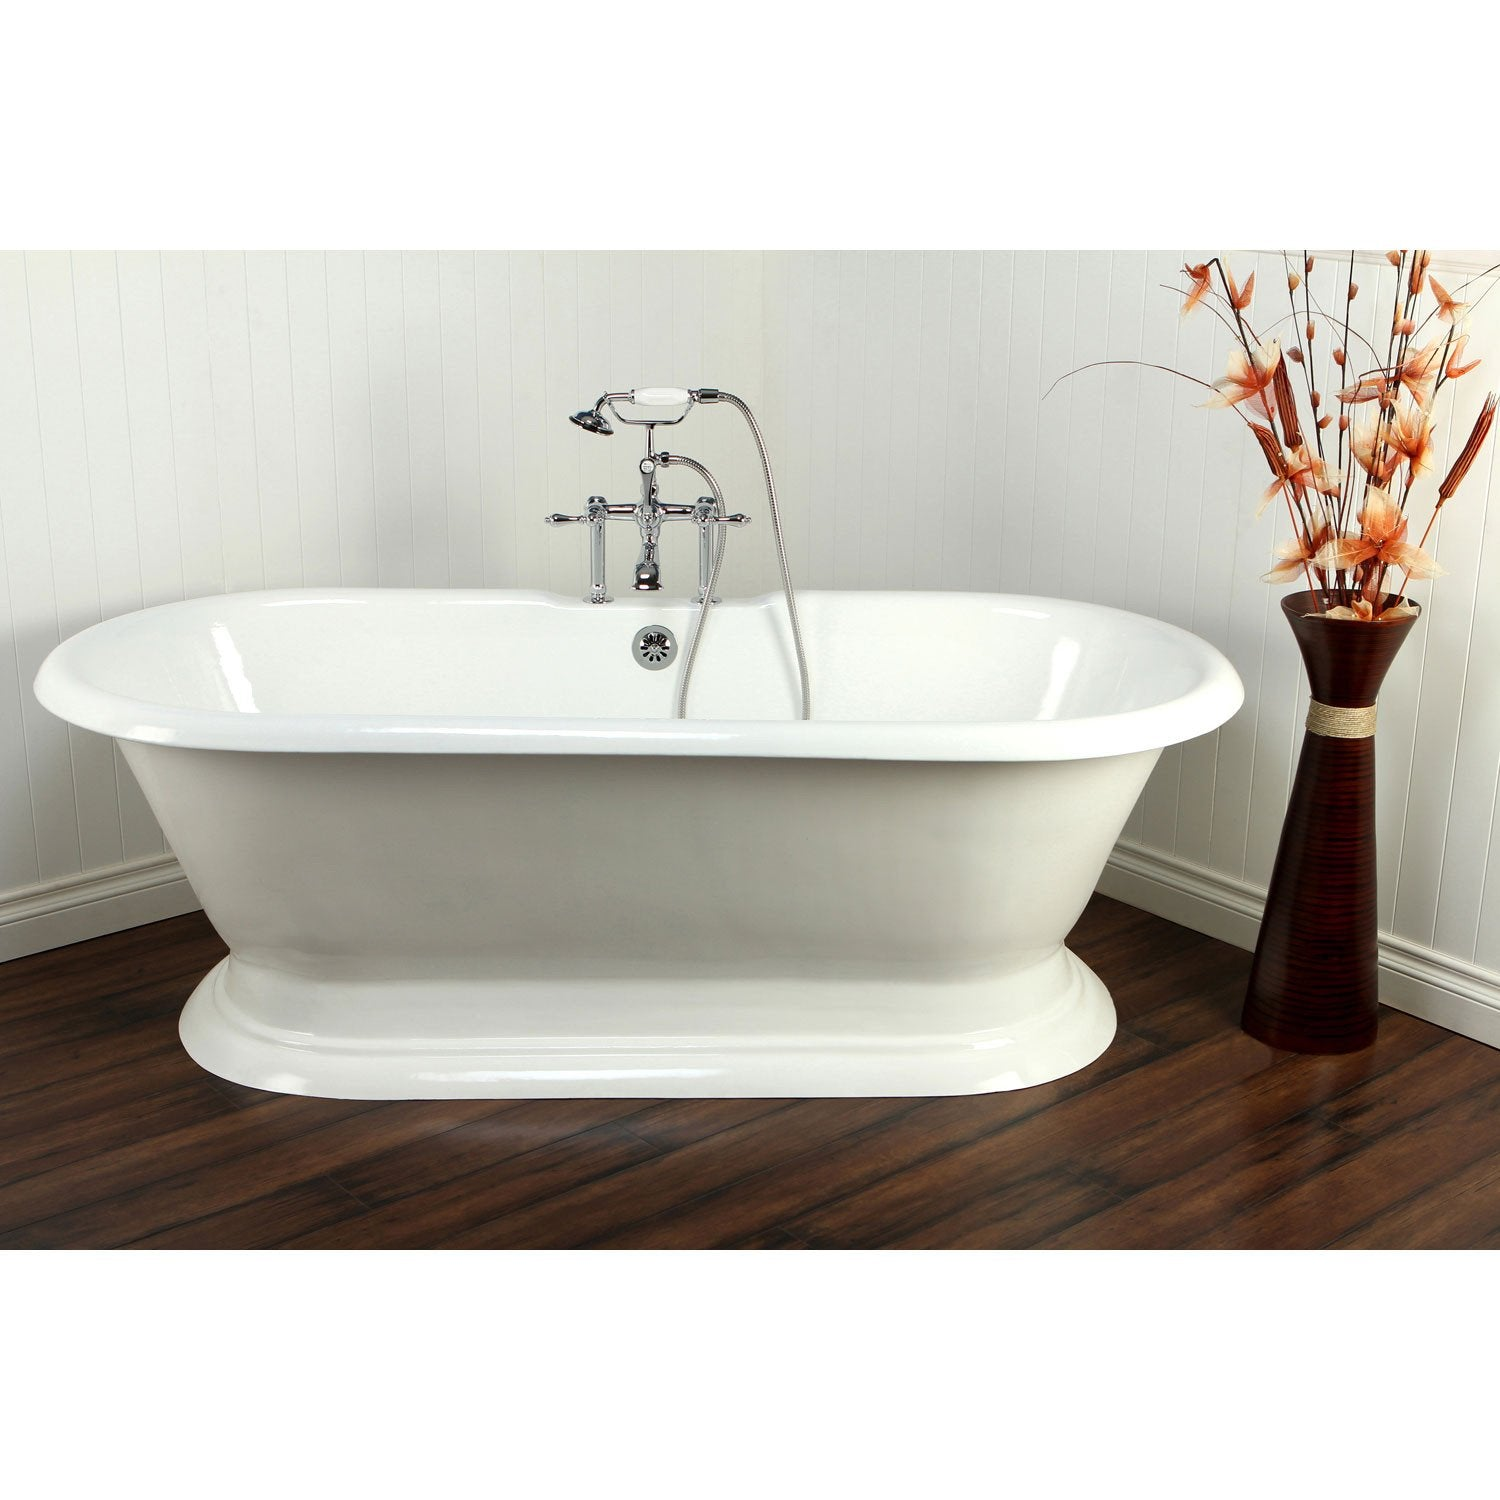 "72"" Freestanding Tub with Chrome Tub Filler Faucet and Hardware Package CTP30"